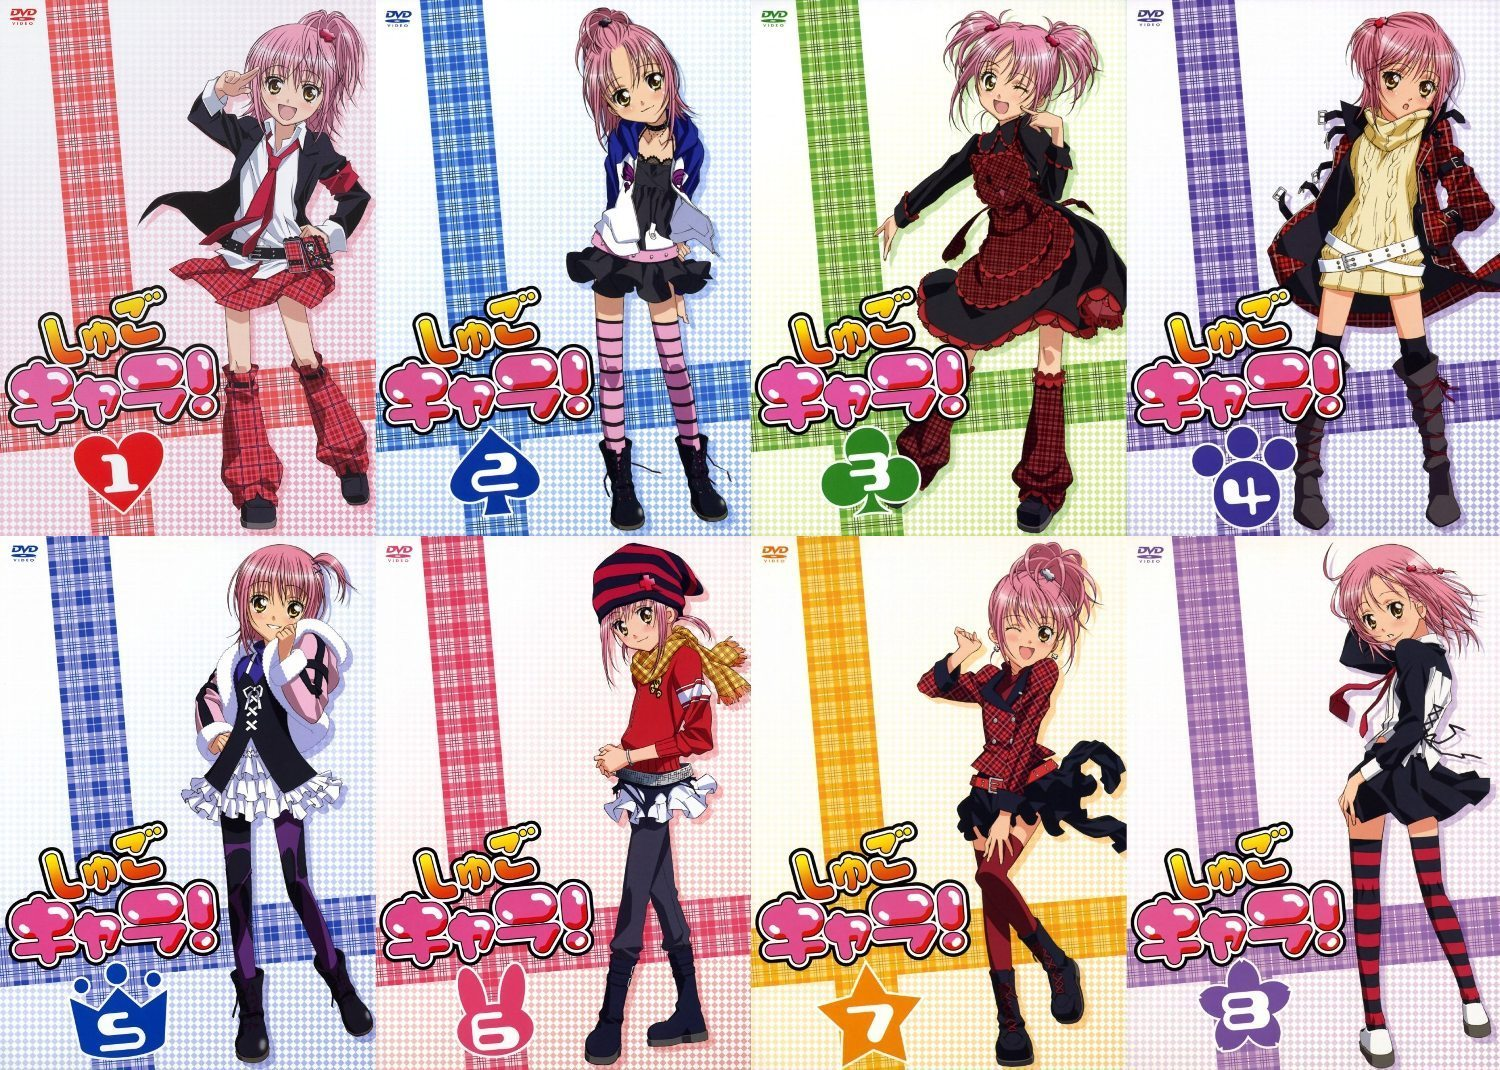 Manga Freak Shugo Chara Challenge Day 19 Do You See Yourself In One Of The Characters Like Do Any Remind You Of Yourself